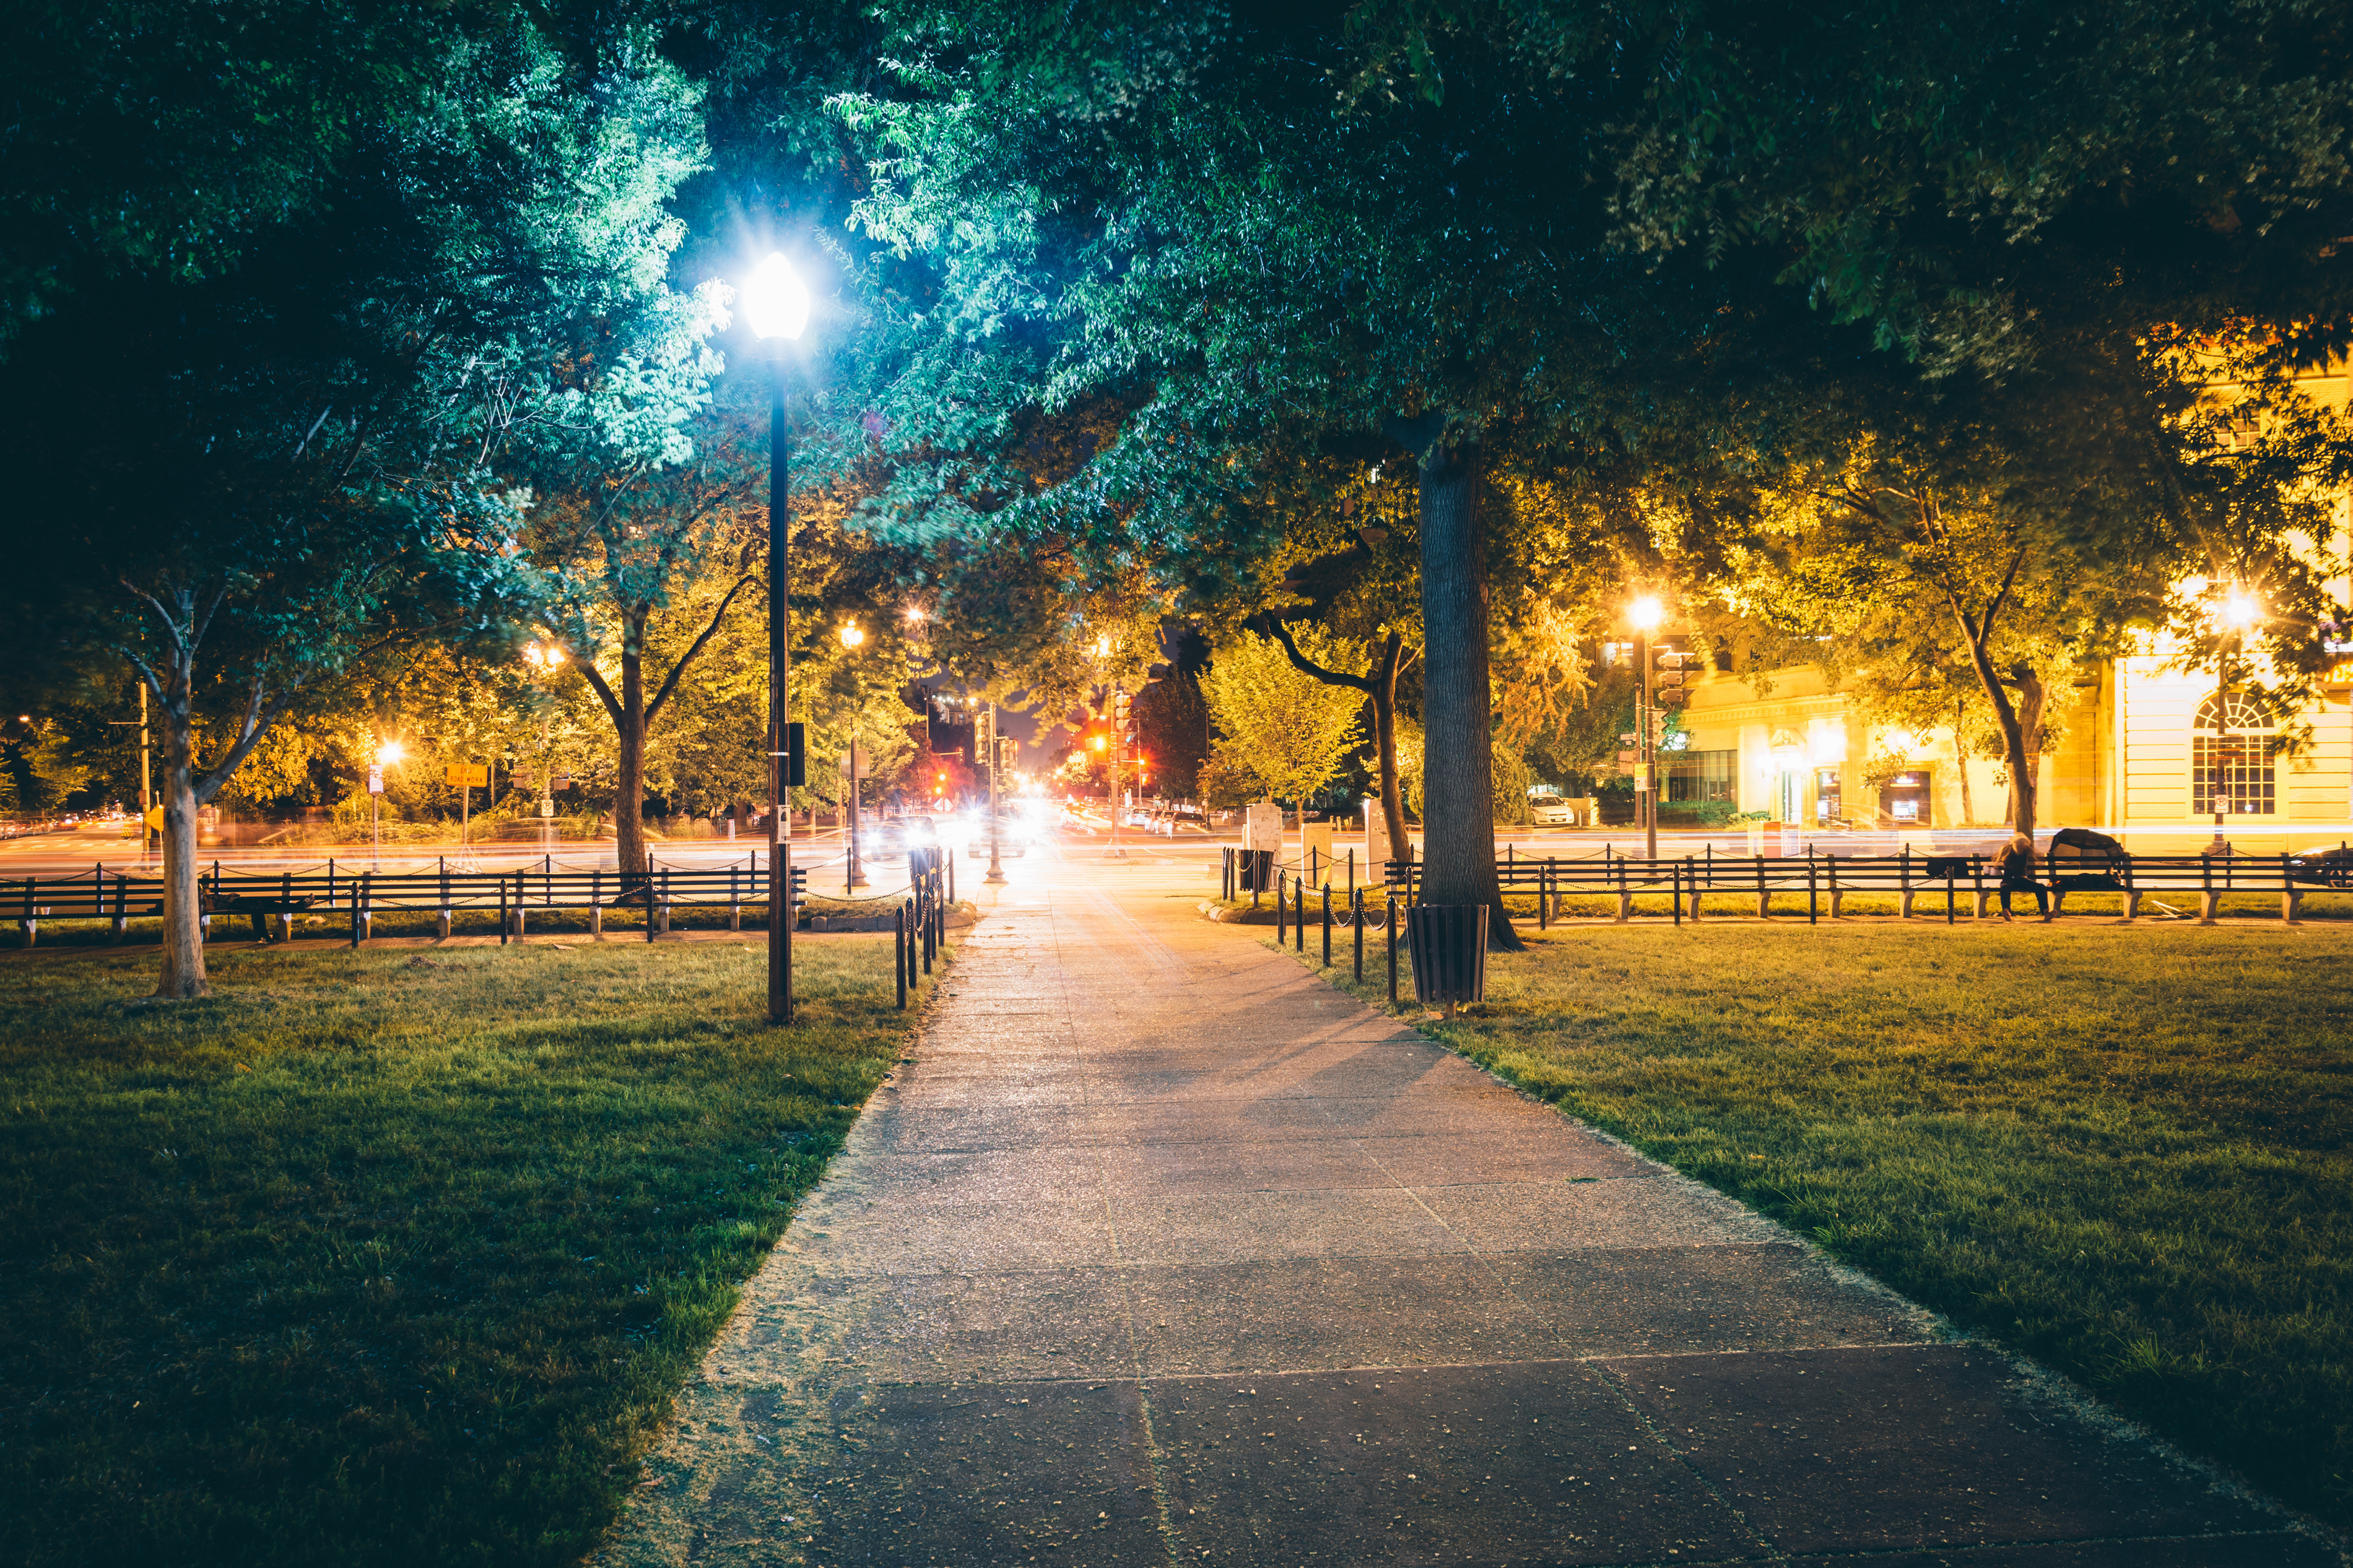 A city circle at night, with a bright streetlight and trees.